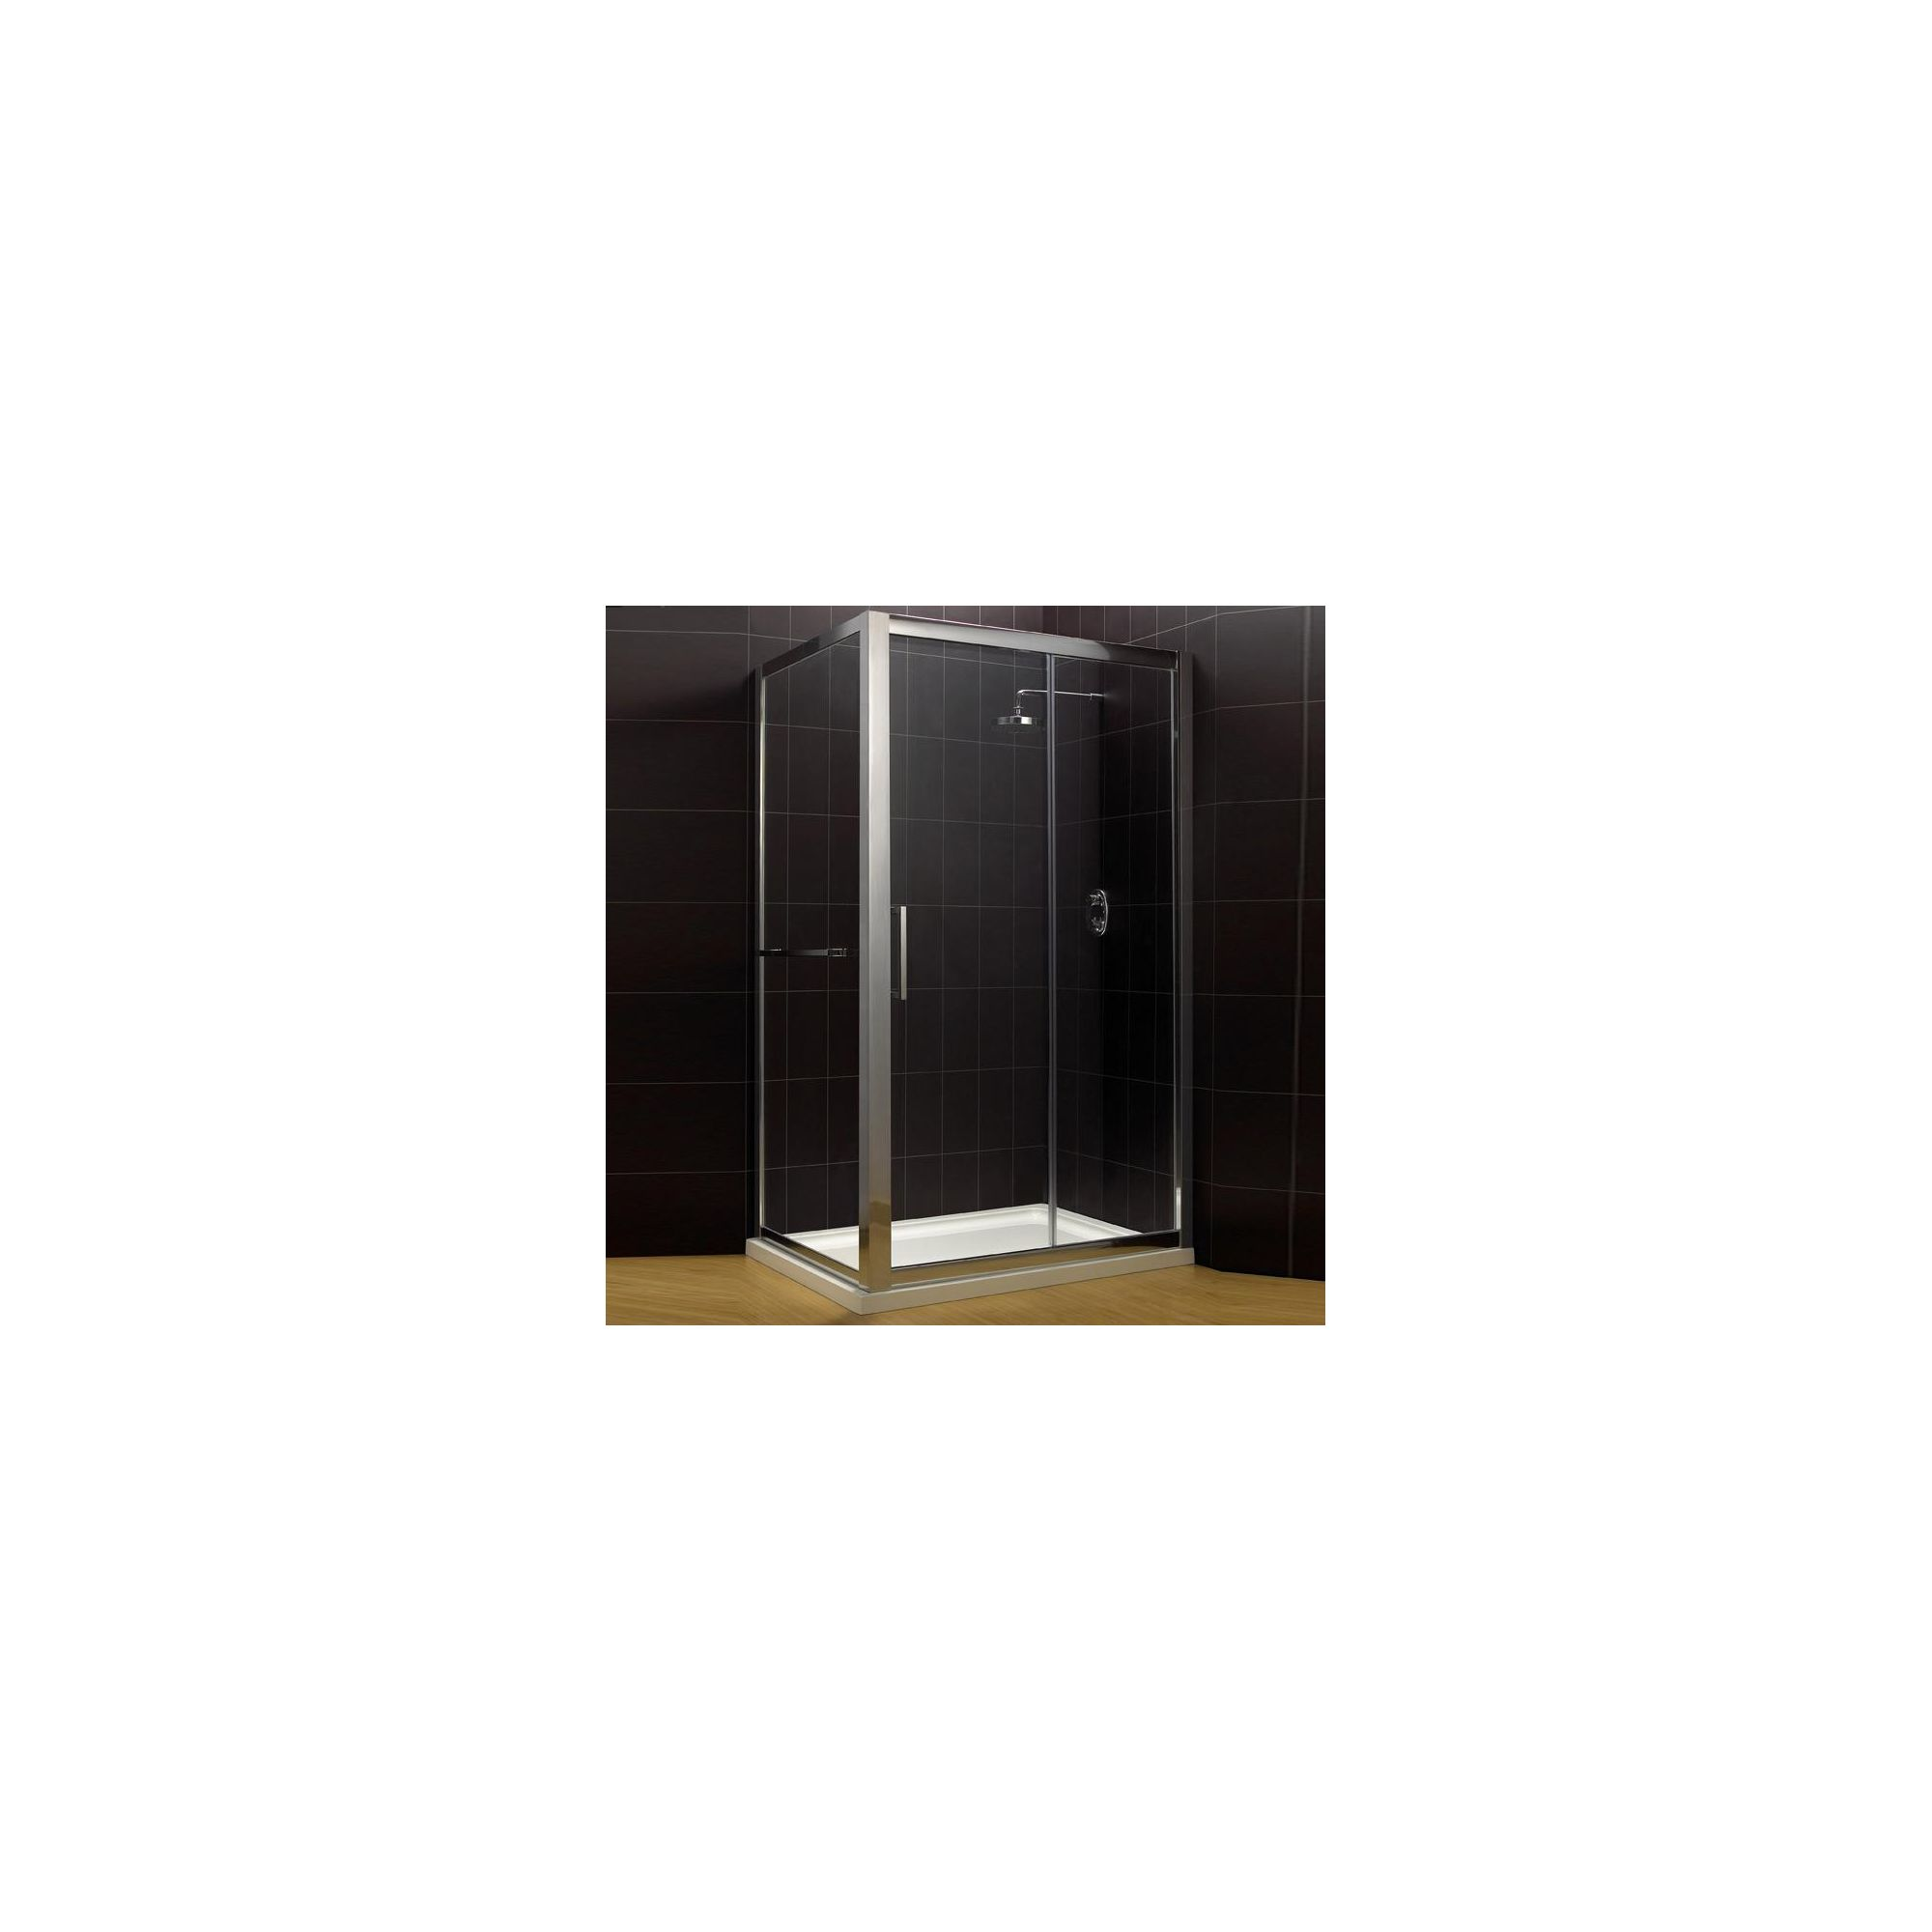 Duchy Supreme Silver Sliding Door Shower Enclosure, 1200mm x 760mm, Standard Tray, 8mm Glass at Tesco Direct